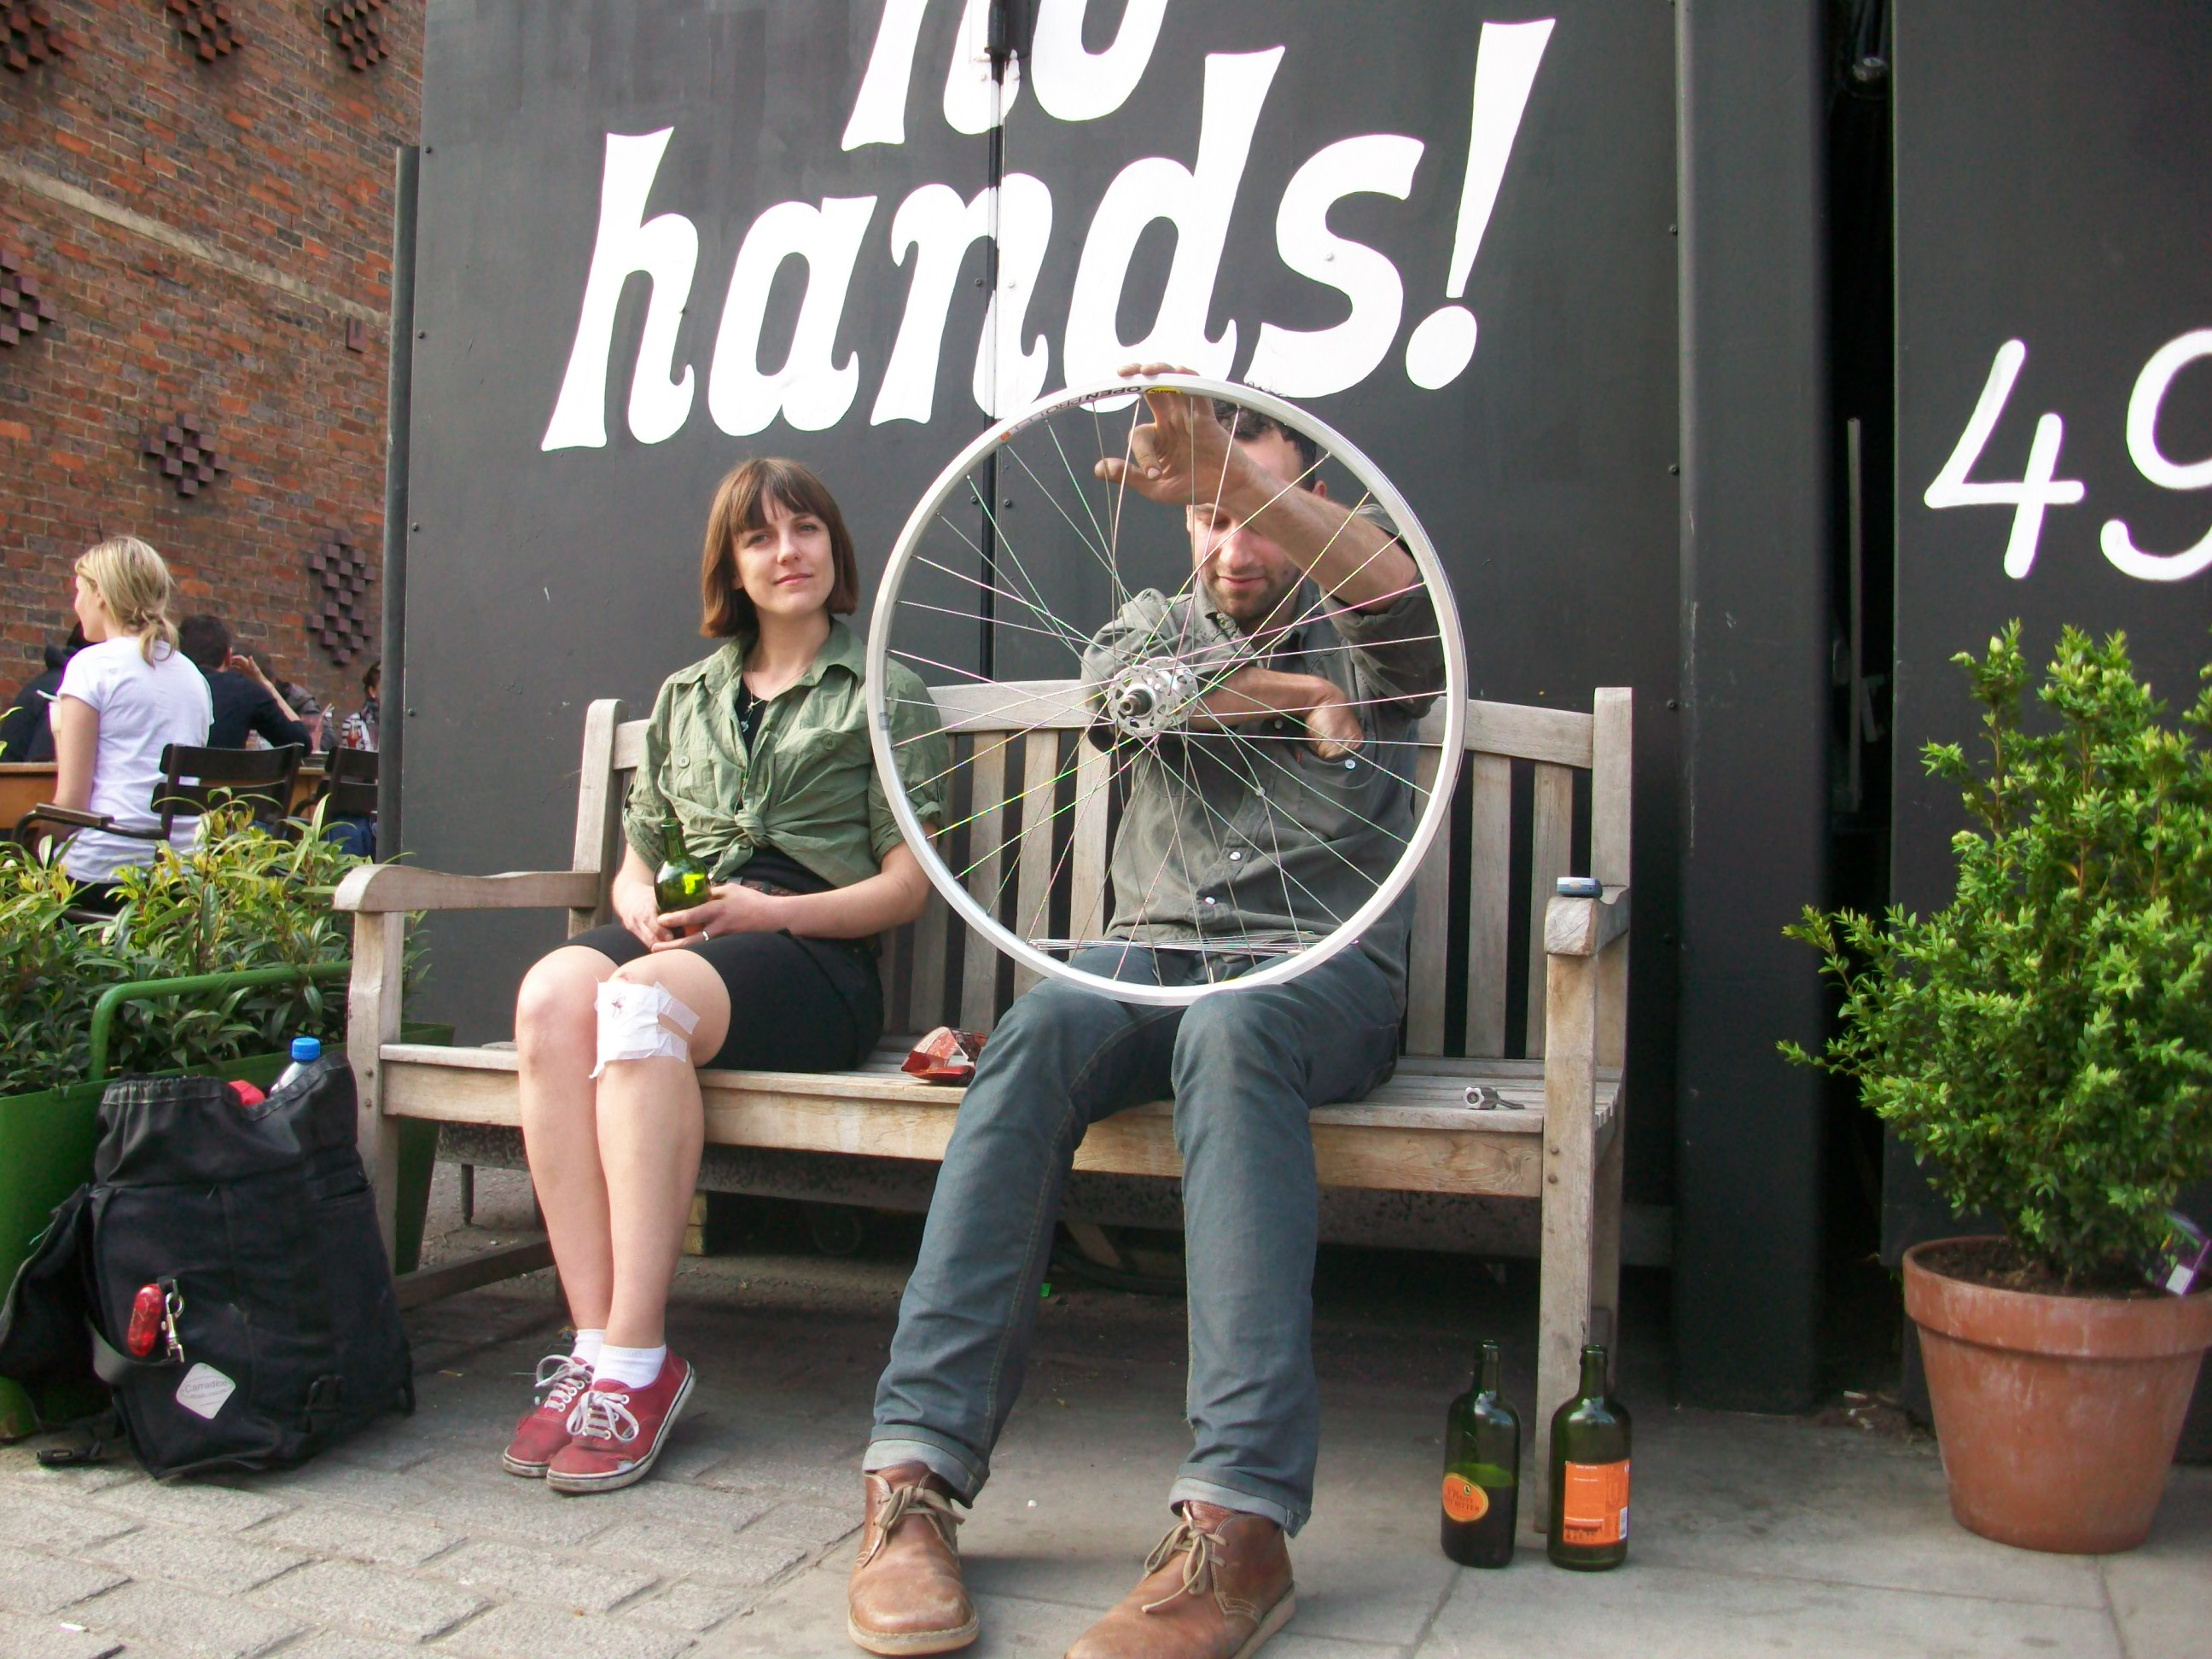 Man and woman sitting on bench outside cycle cafe.